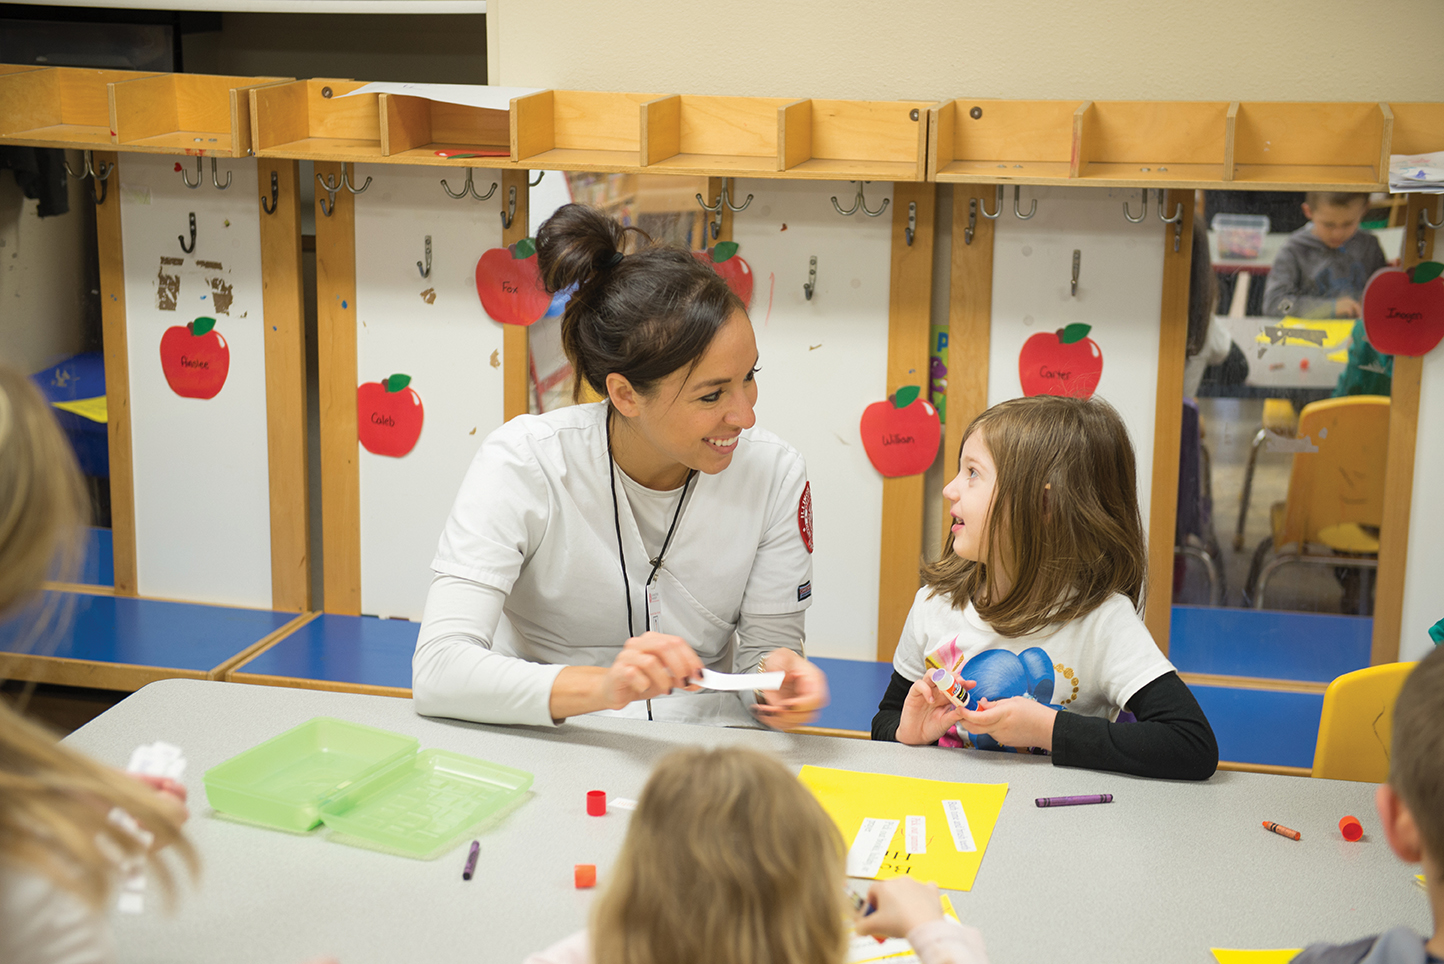 Illinois State nursing students like Miranda Rangel, B.S.N. '17, have been helping to improve the health of area students as part of America's Promise.